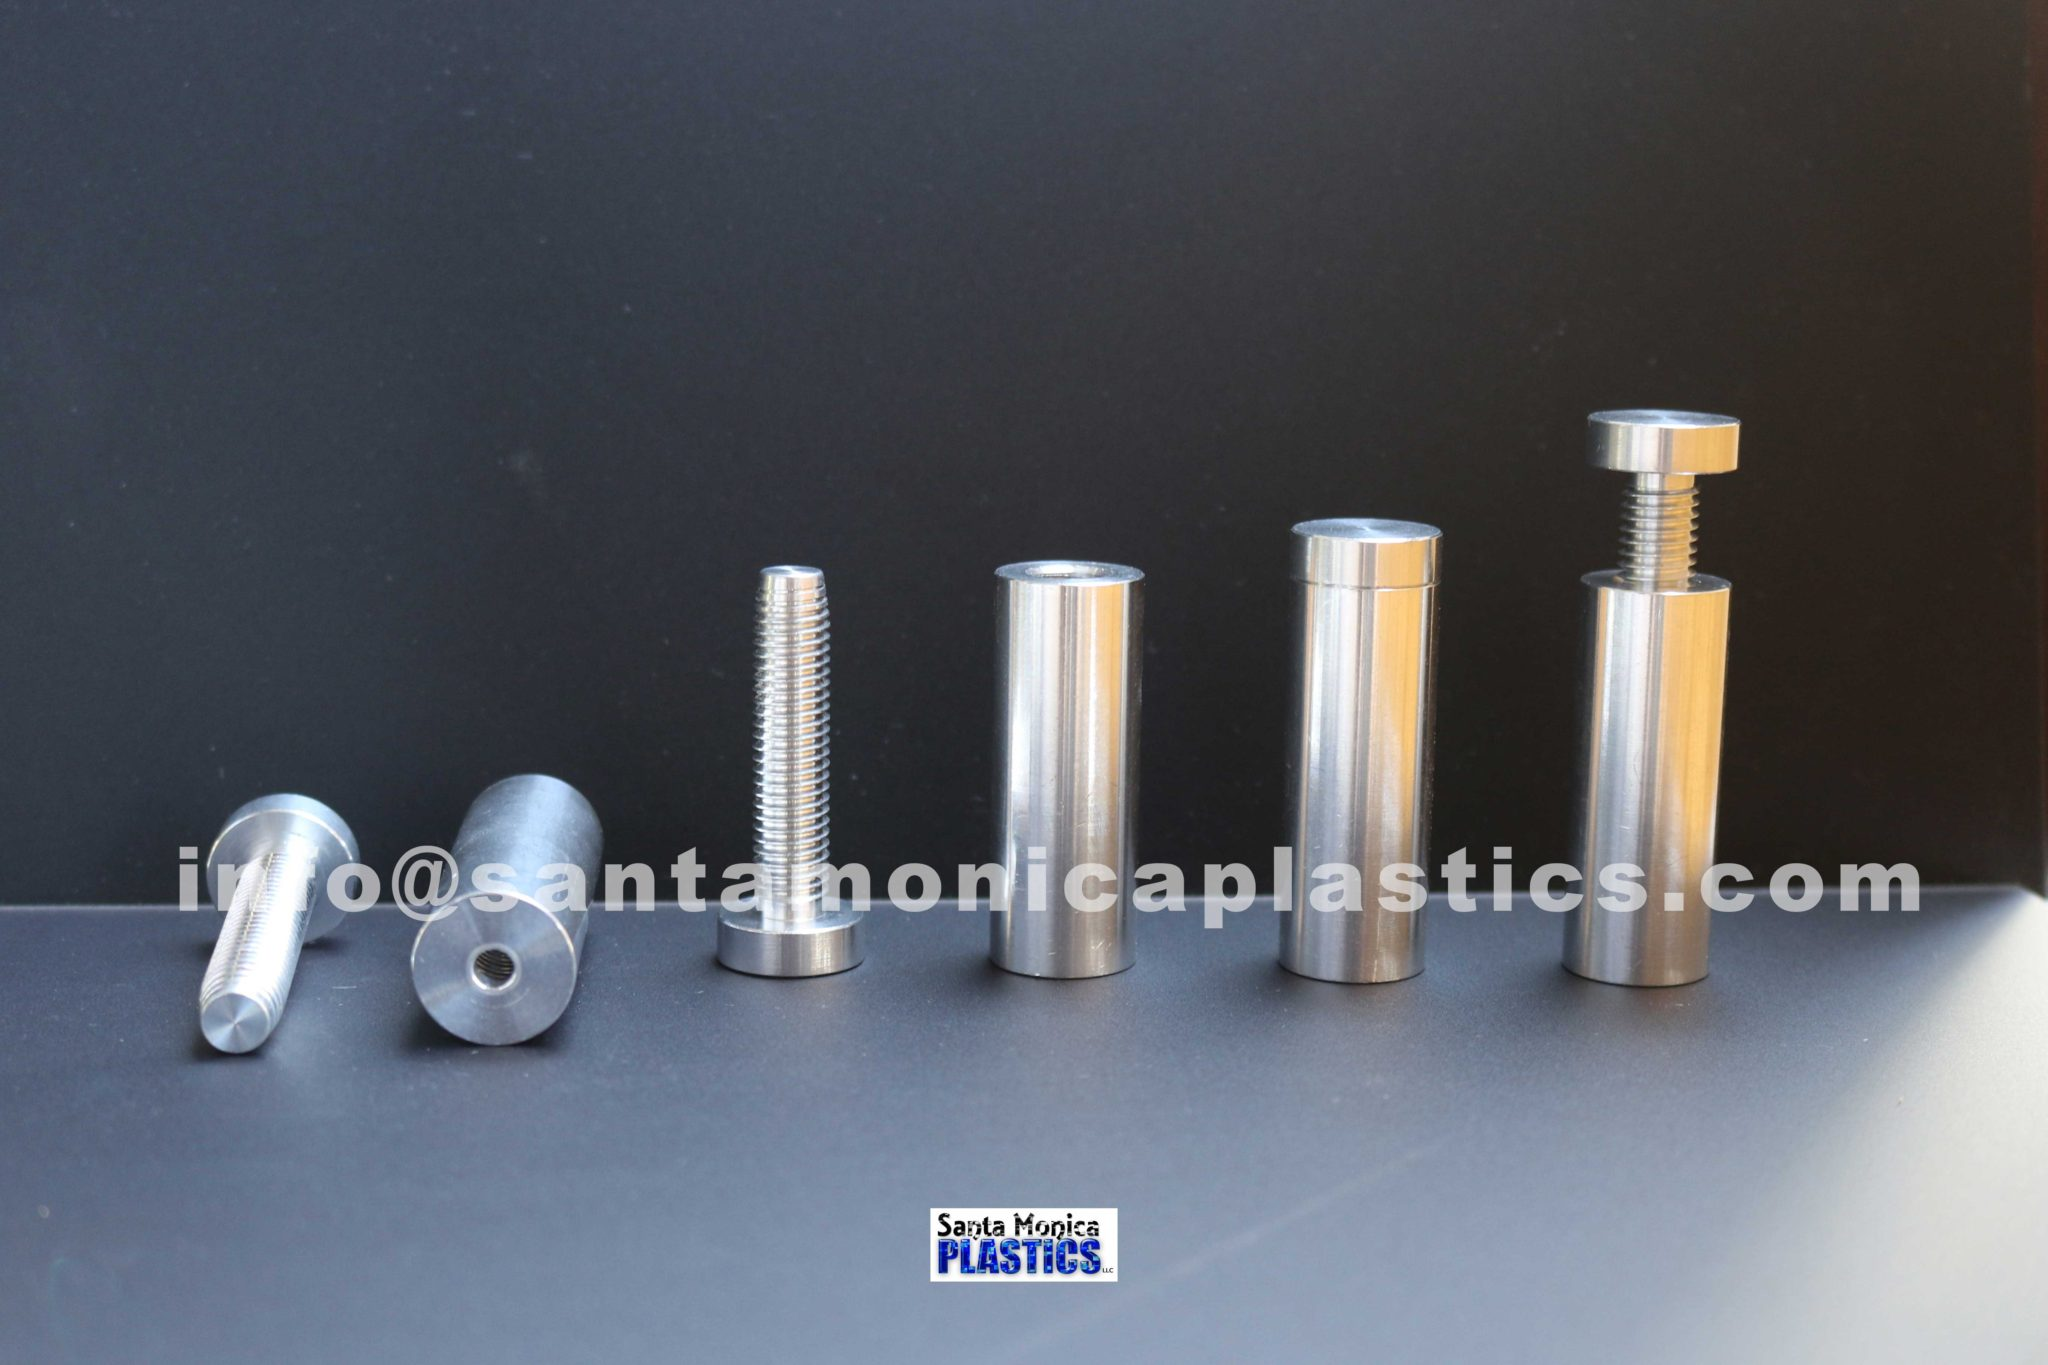 "Aluminum Standoffs #6 Size 0.75"" X 2.25"" (4 Pieces)"